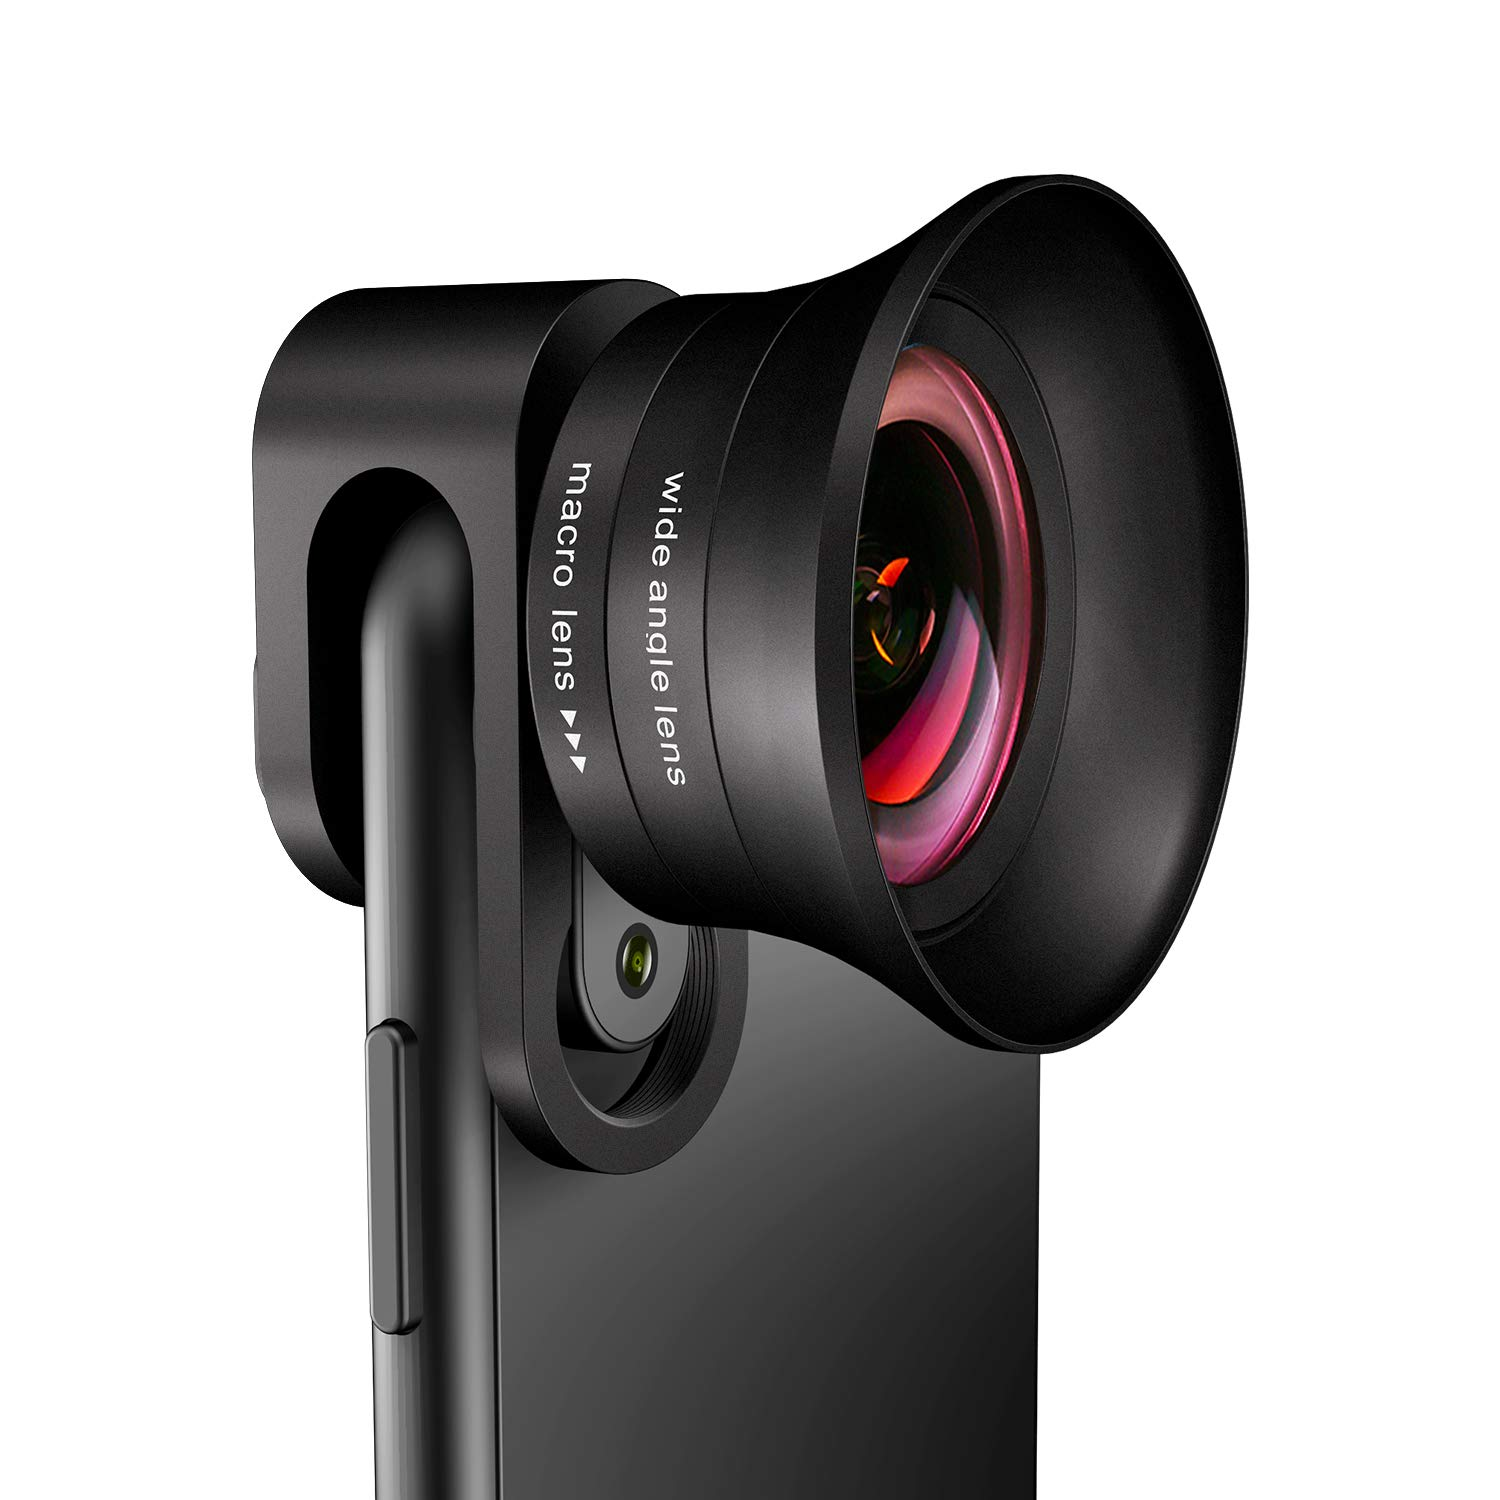 Phone Camera Lens Pro - ANGFLY 4K HD 2 in 1 Aspherical Wide Angle Lens & Super Macro Lens,Clip-On Cell Phone Camera Lenses Compatible with iPhone,Android,Samsung Mobile Phones and Tablets by ANGFLY